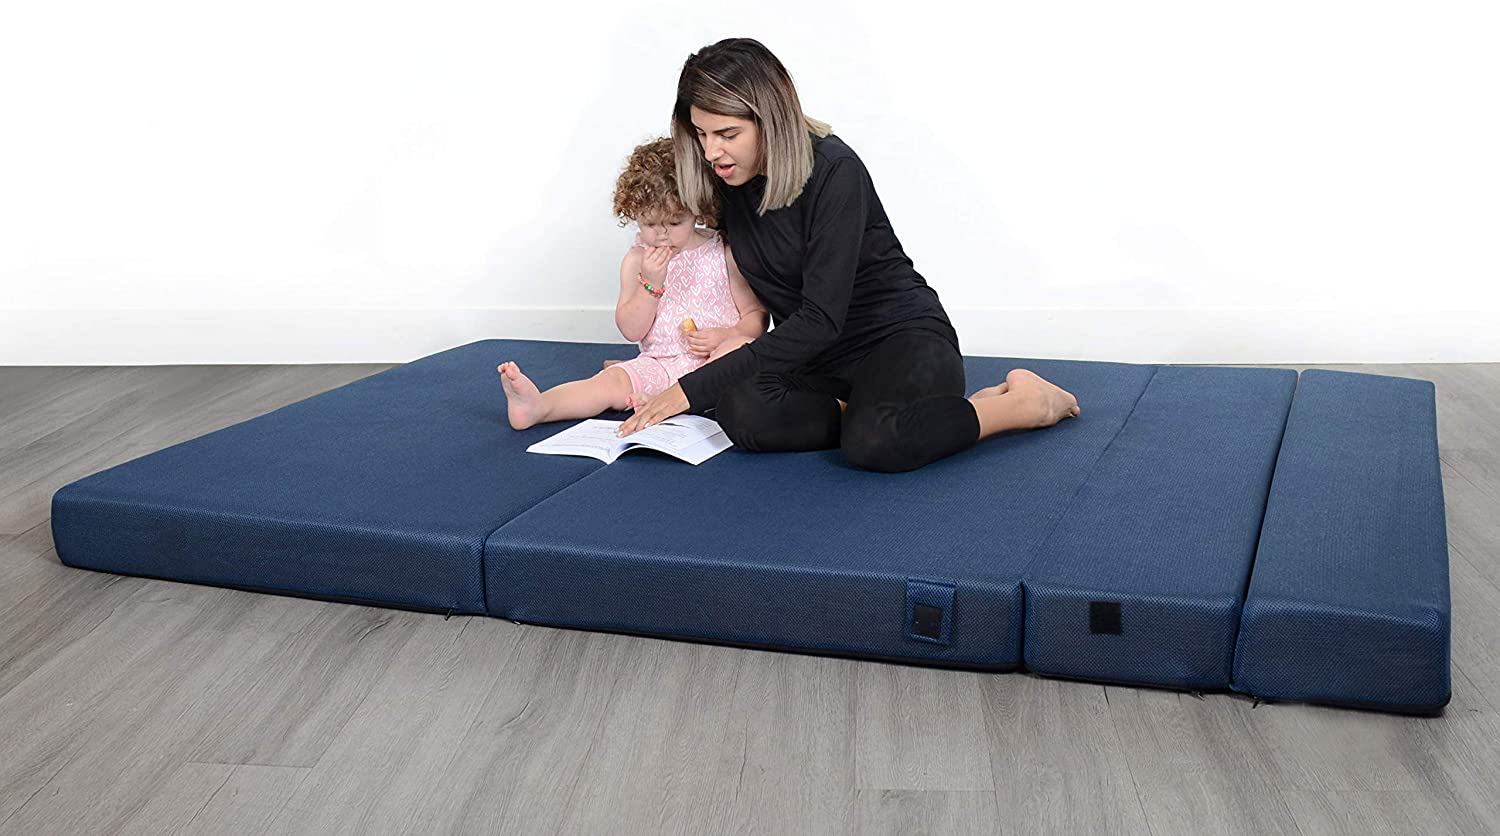 Milliard Tri Fold Foam Folding Mattress And Sofa Bed For Guests Queen 78x58x4 5 Inch Navy Milliard Bedding The Ultimate Sleep Experience